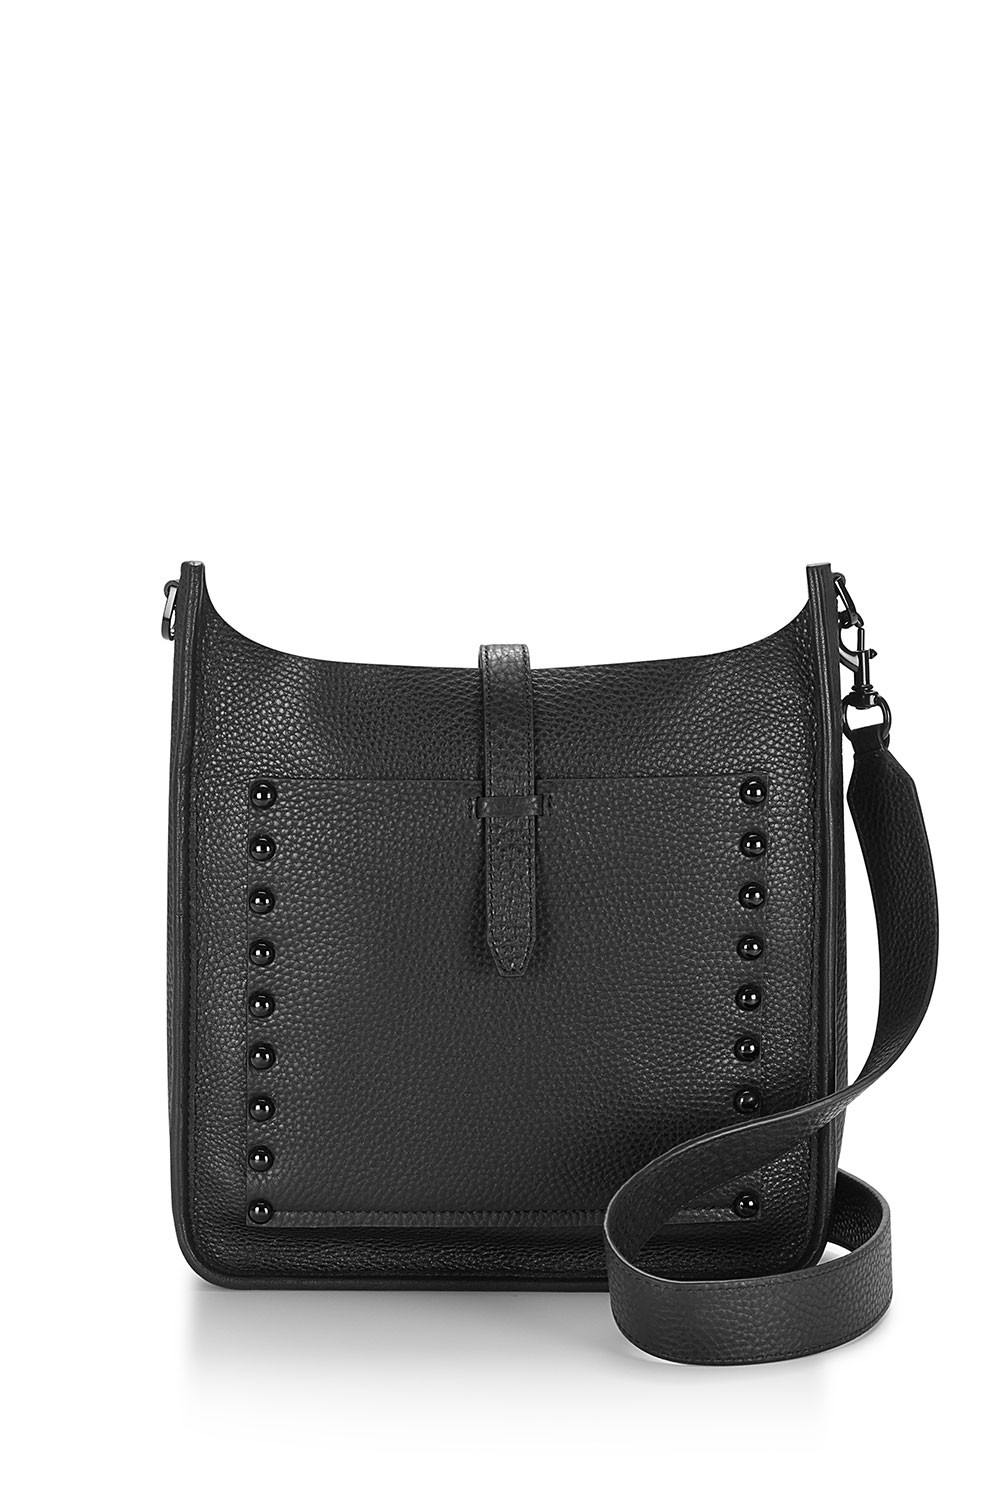 rebecca minkoff bags unlined feed bag mgnztpb